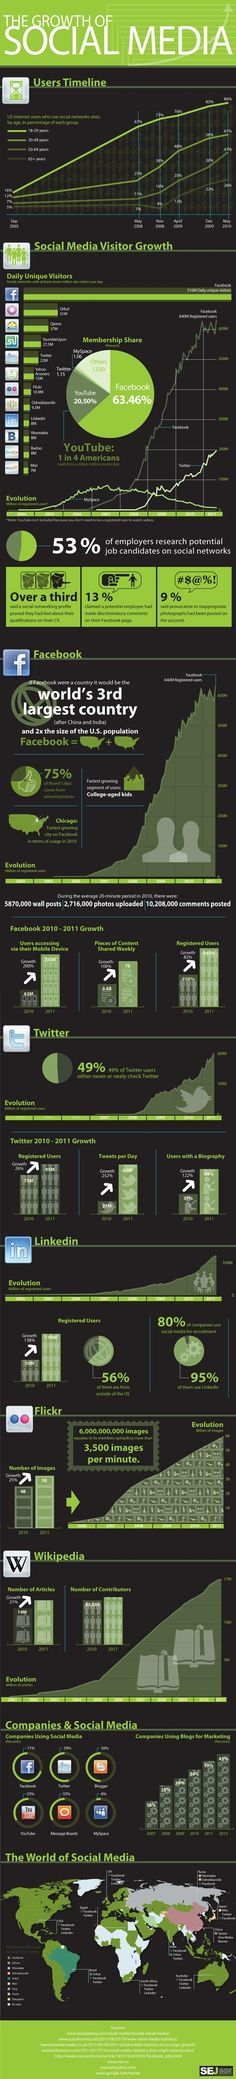 The Growth of Social Media #socialmedia.  . . . Please Like before you RePin... Sponsored by International Travel Reviews - World Travel Writers and Photographers Group. We focus on writing Reviews & taking Photos for the Travel & Tourism Industry and Historical Sites clients. Rick Stoneking Sr. Owner/Founder